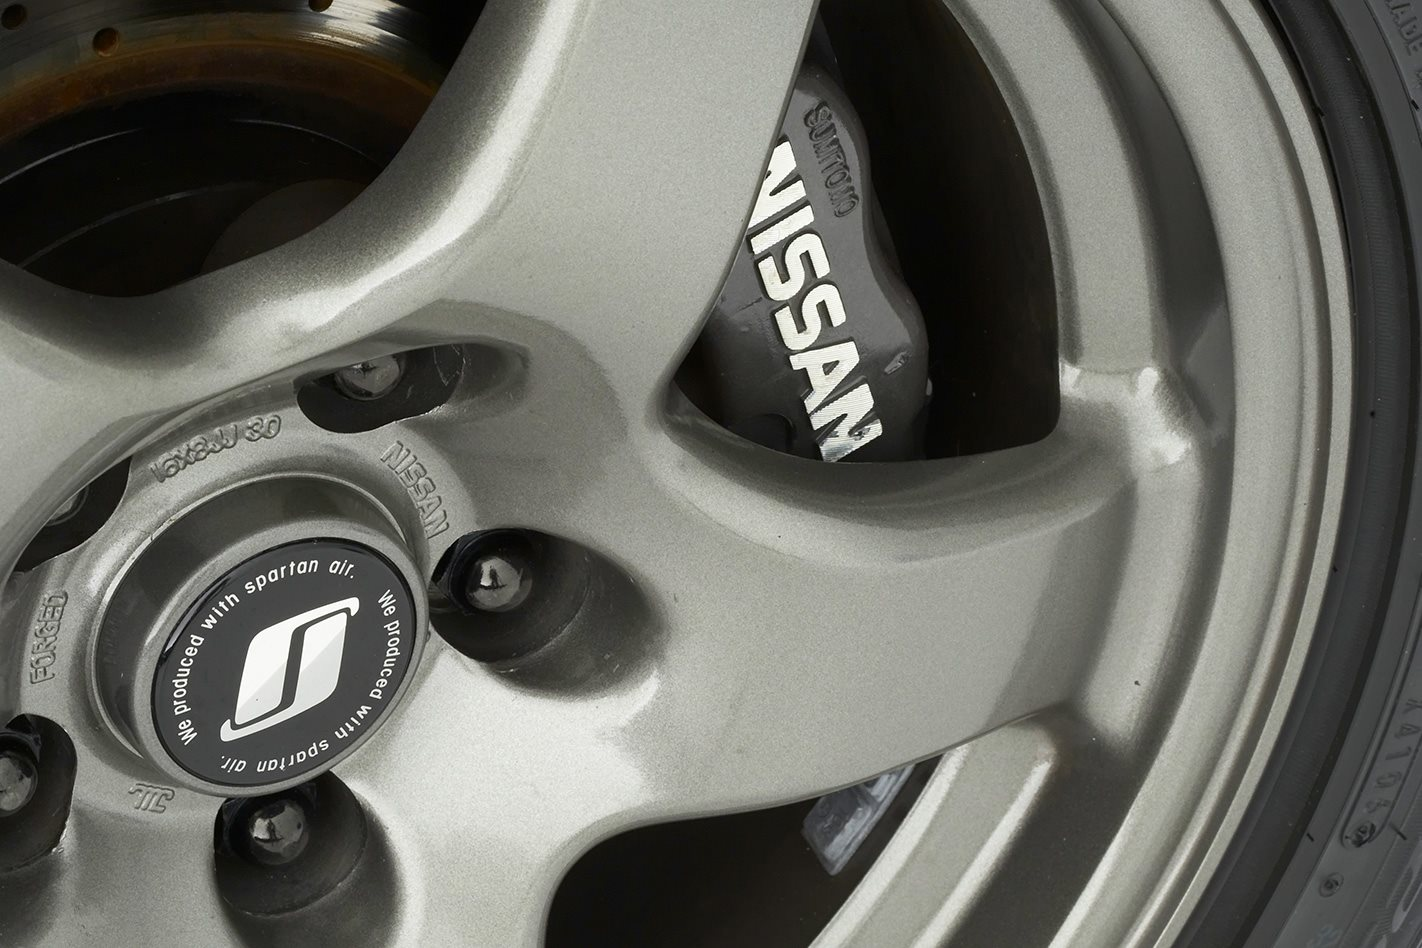 1991-Nissan-Skyline-GT-R-wheel.jpg